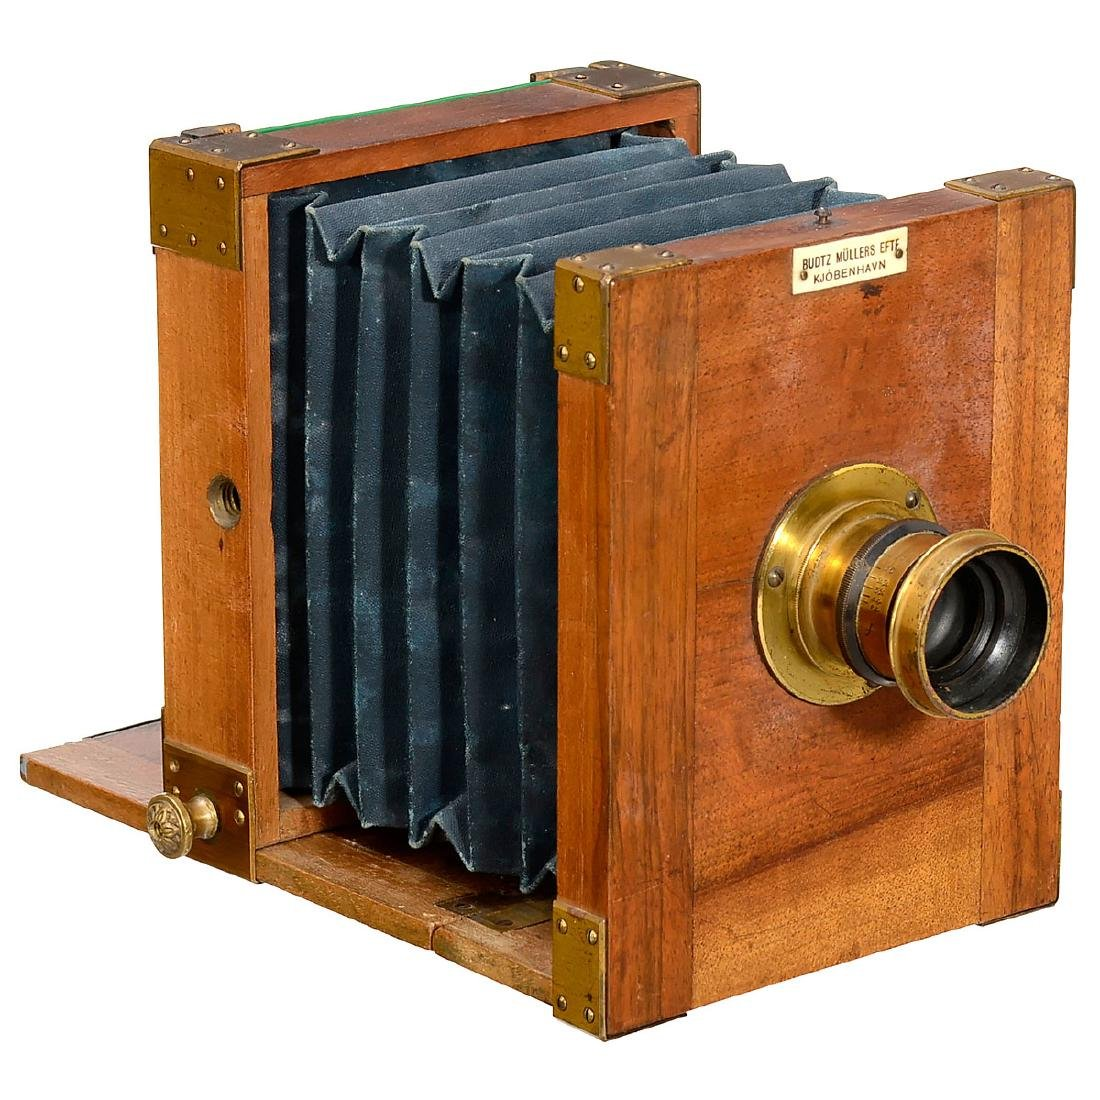 Small Field Camera with Provenance from Budtz Müller,